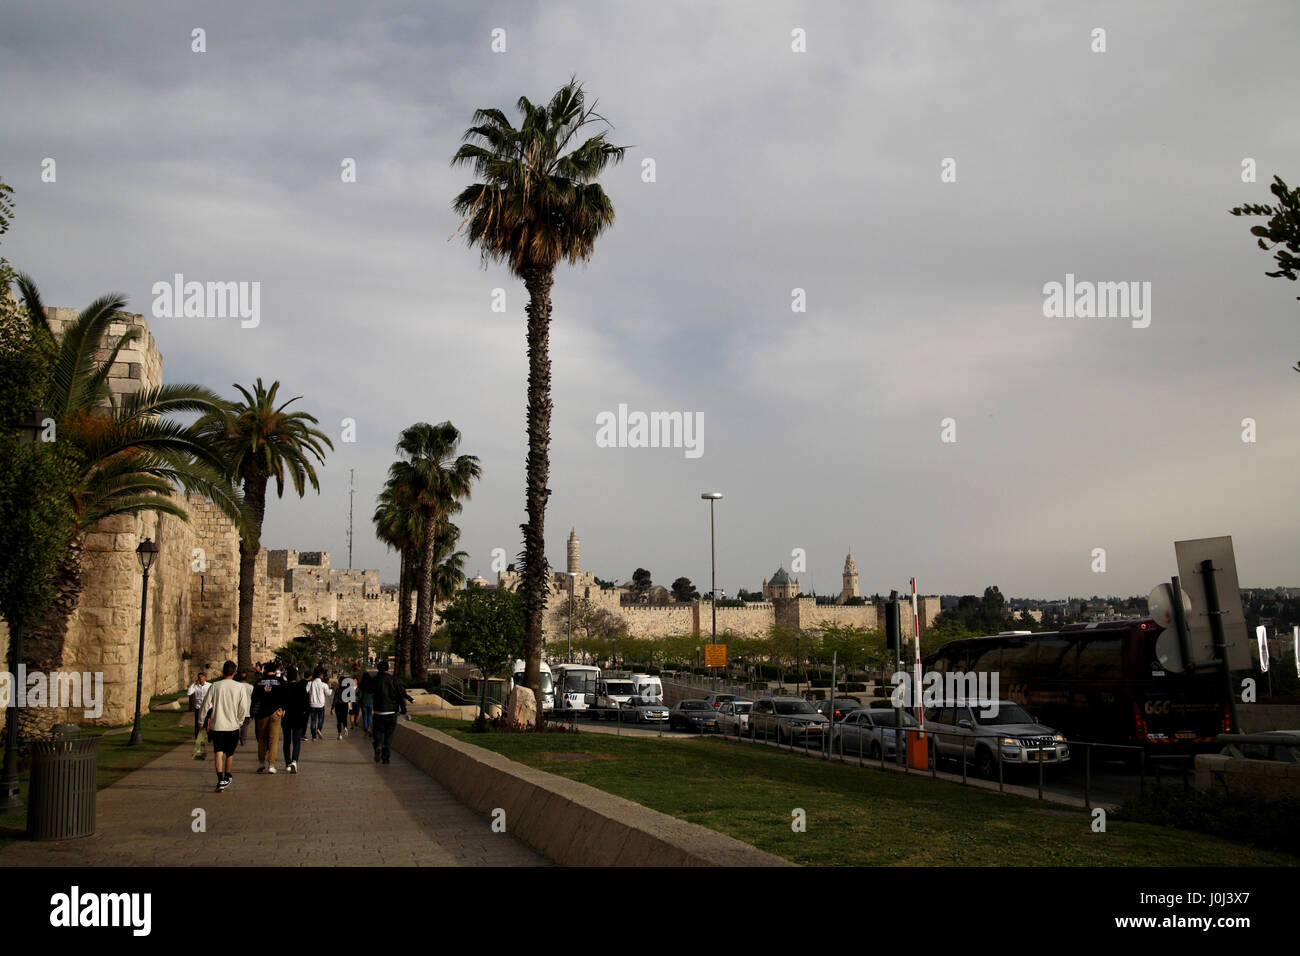 The western part of Old Jerusalem walls and Jaffa Road on a cloudy day, the Tower of David is in the center and - Stock Image